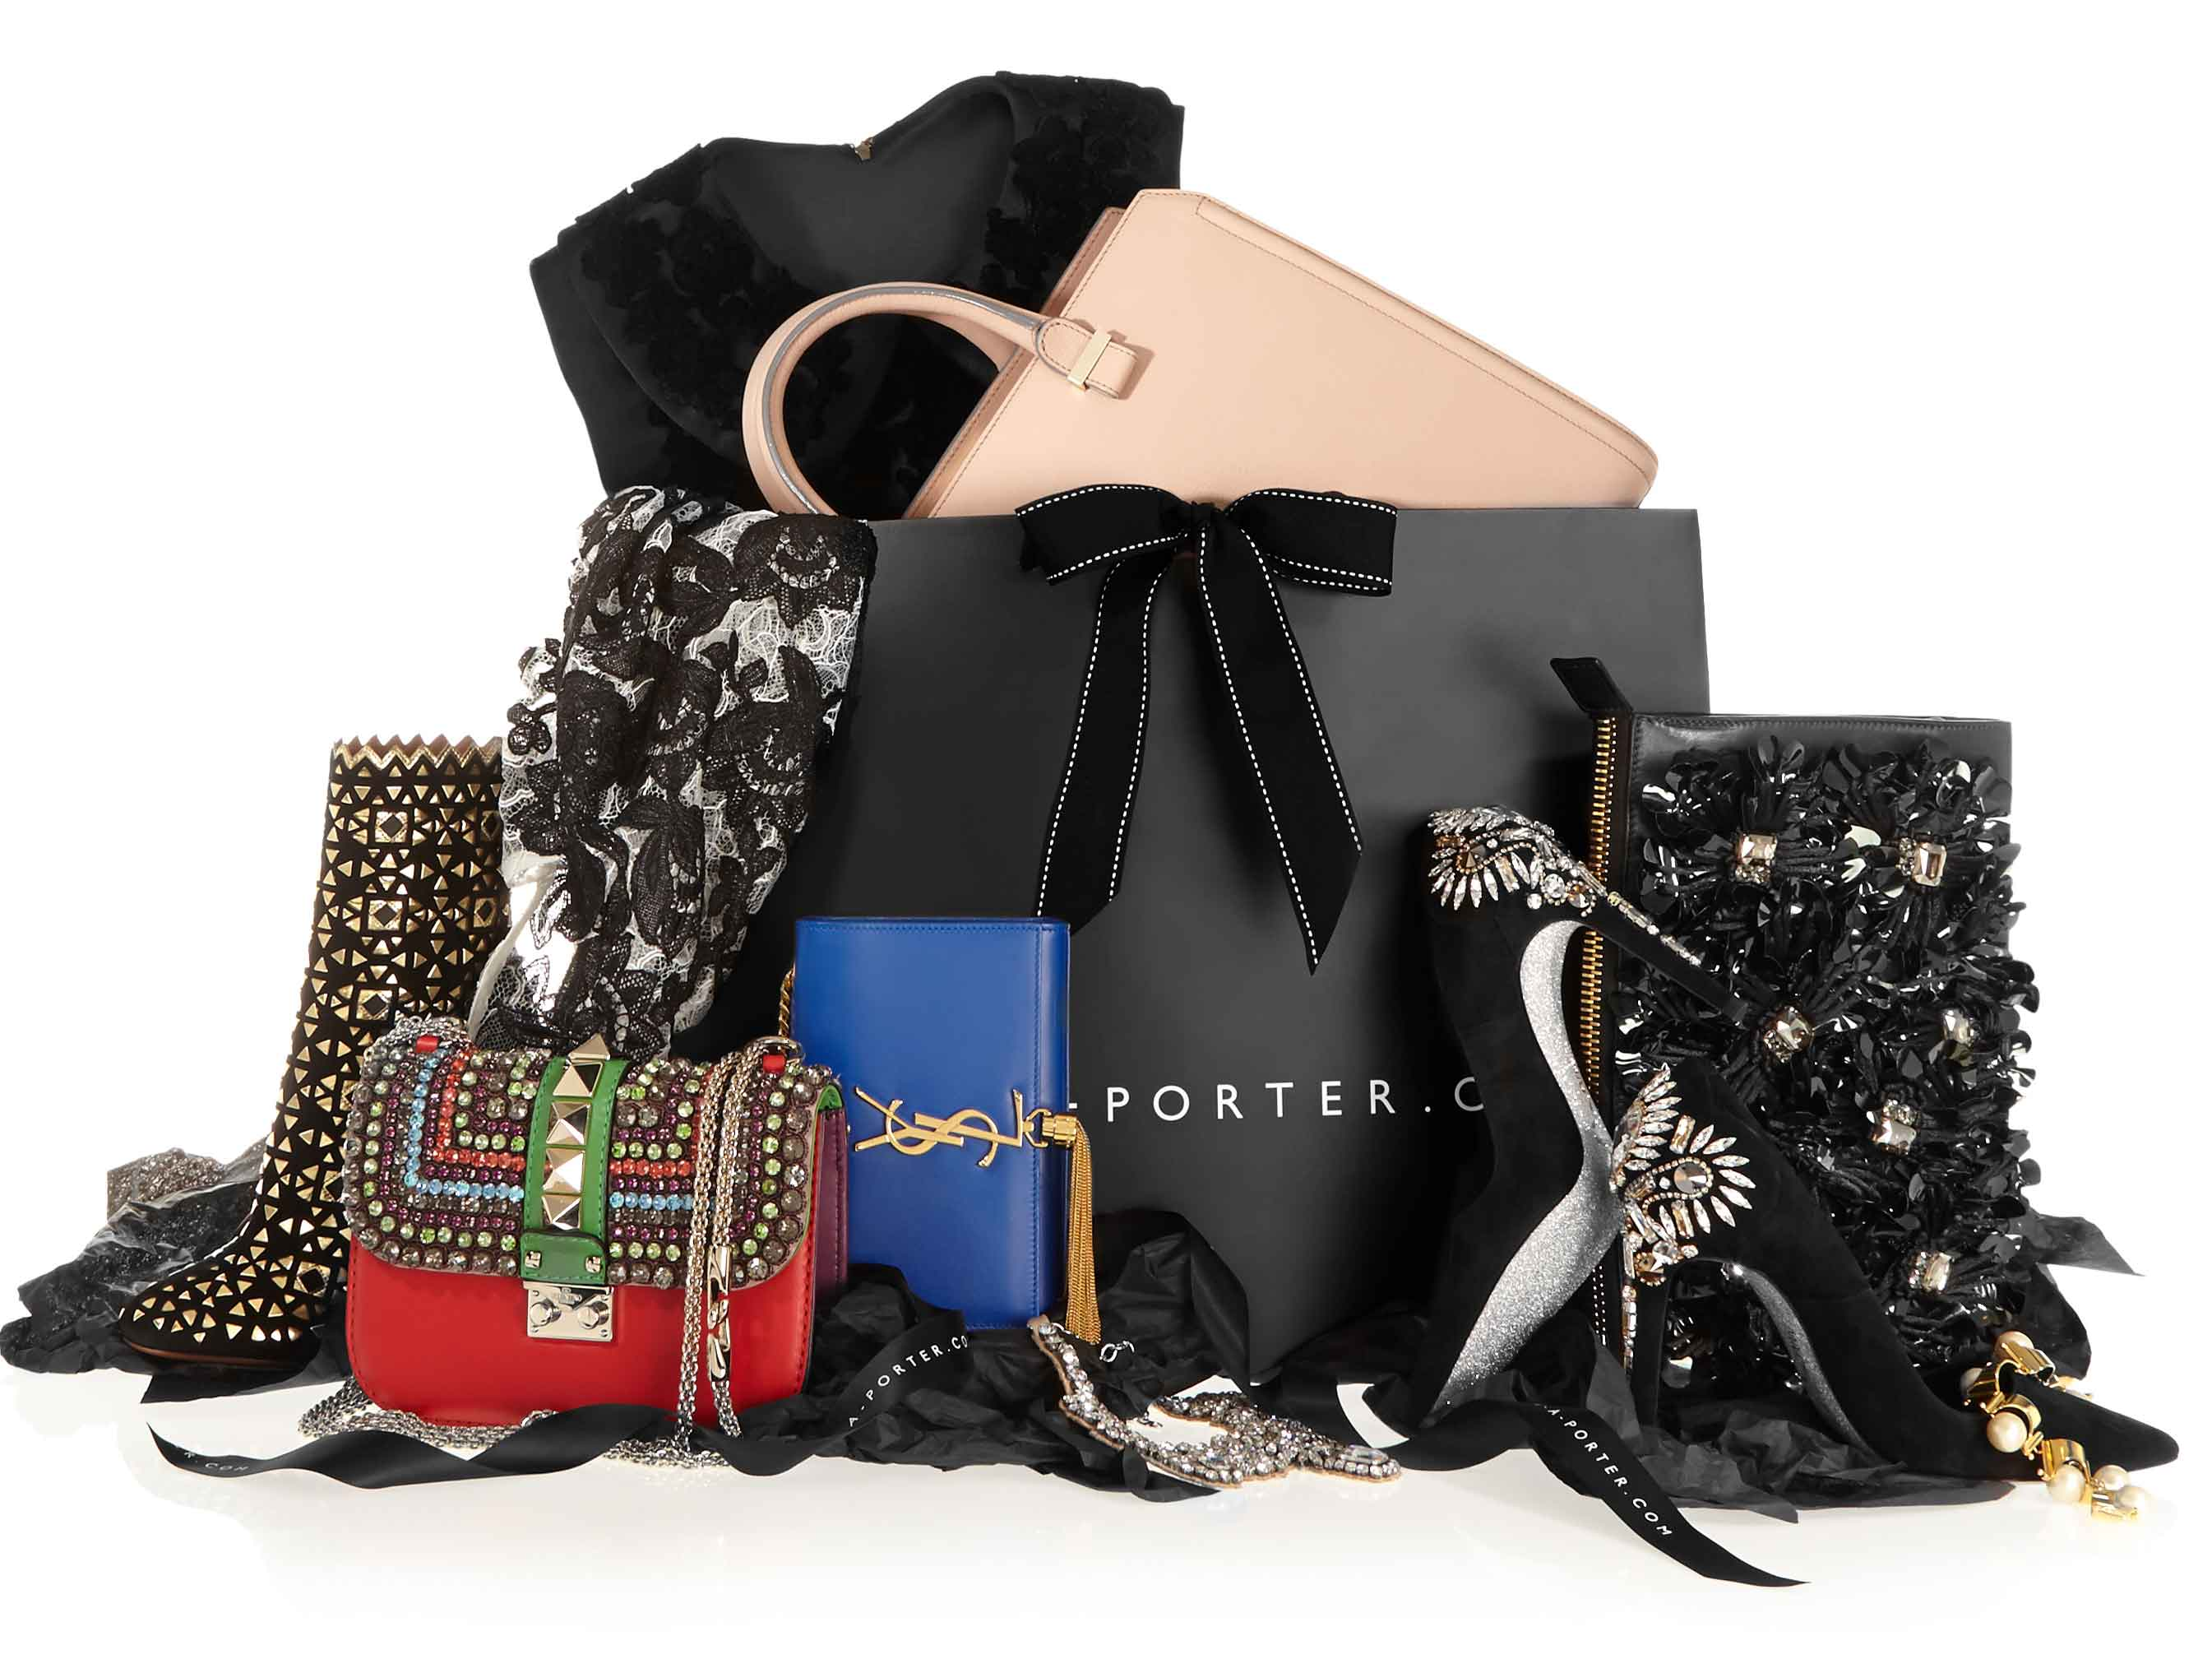 Net-a-porter launches fantasy gifts including an endless shopping ...